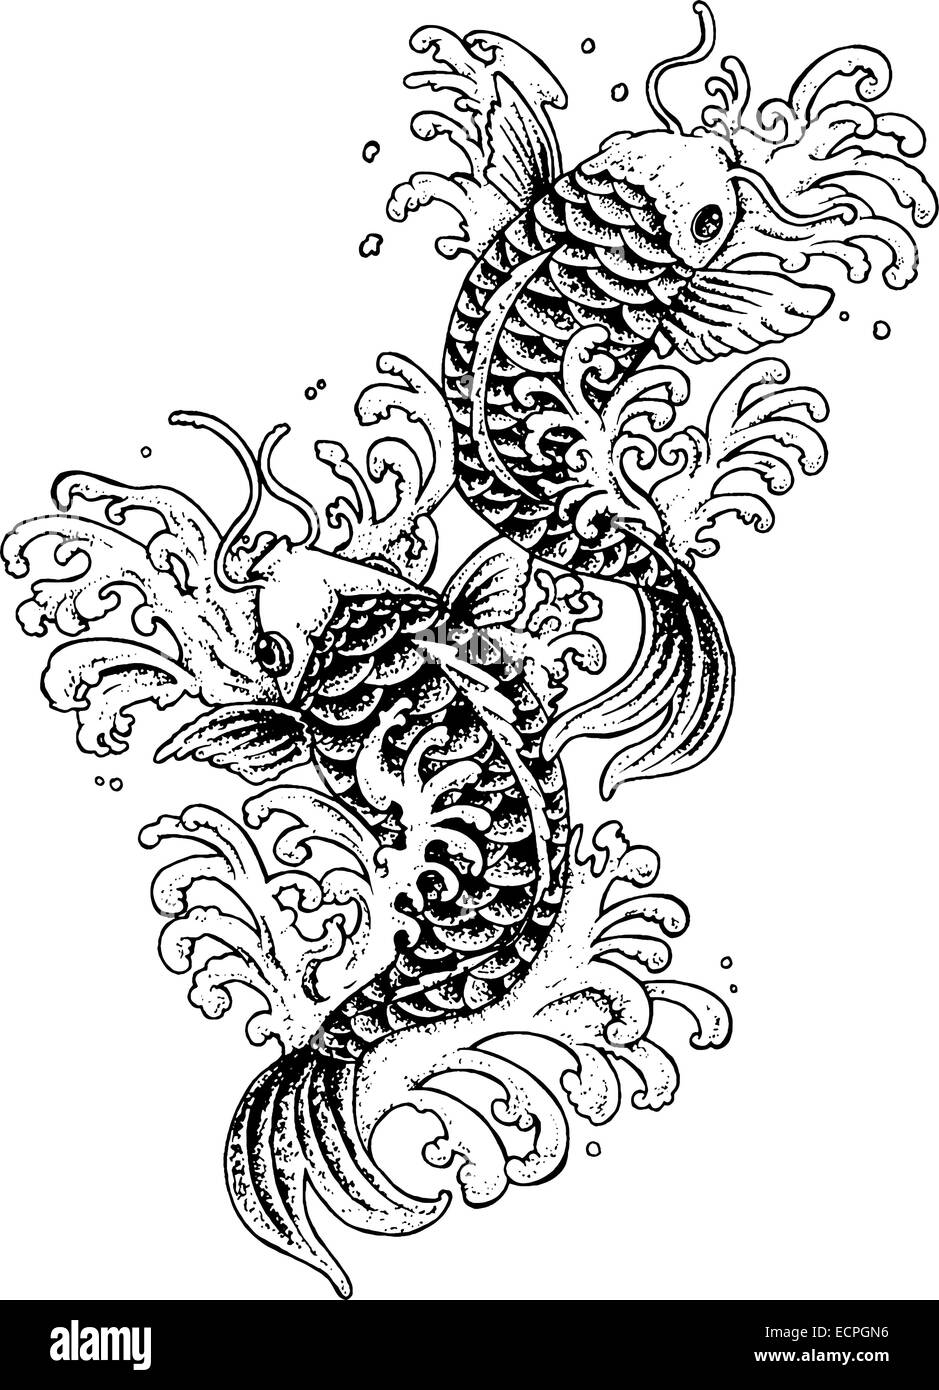 Traditional Koi Fish Tattoo Black And White Illustration Stock